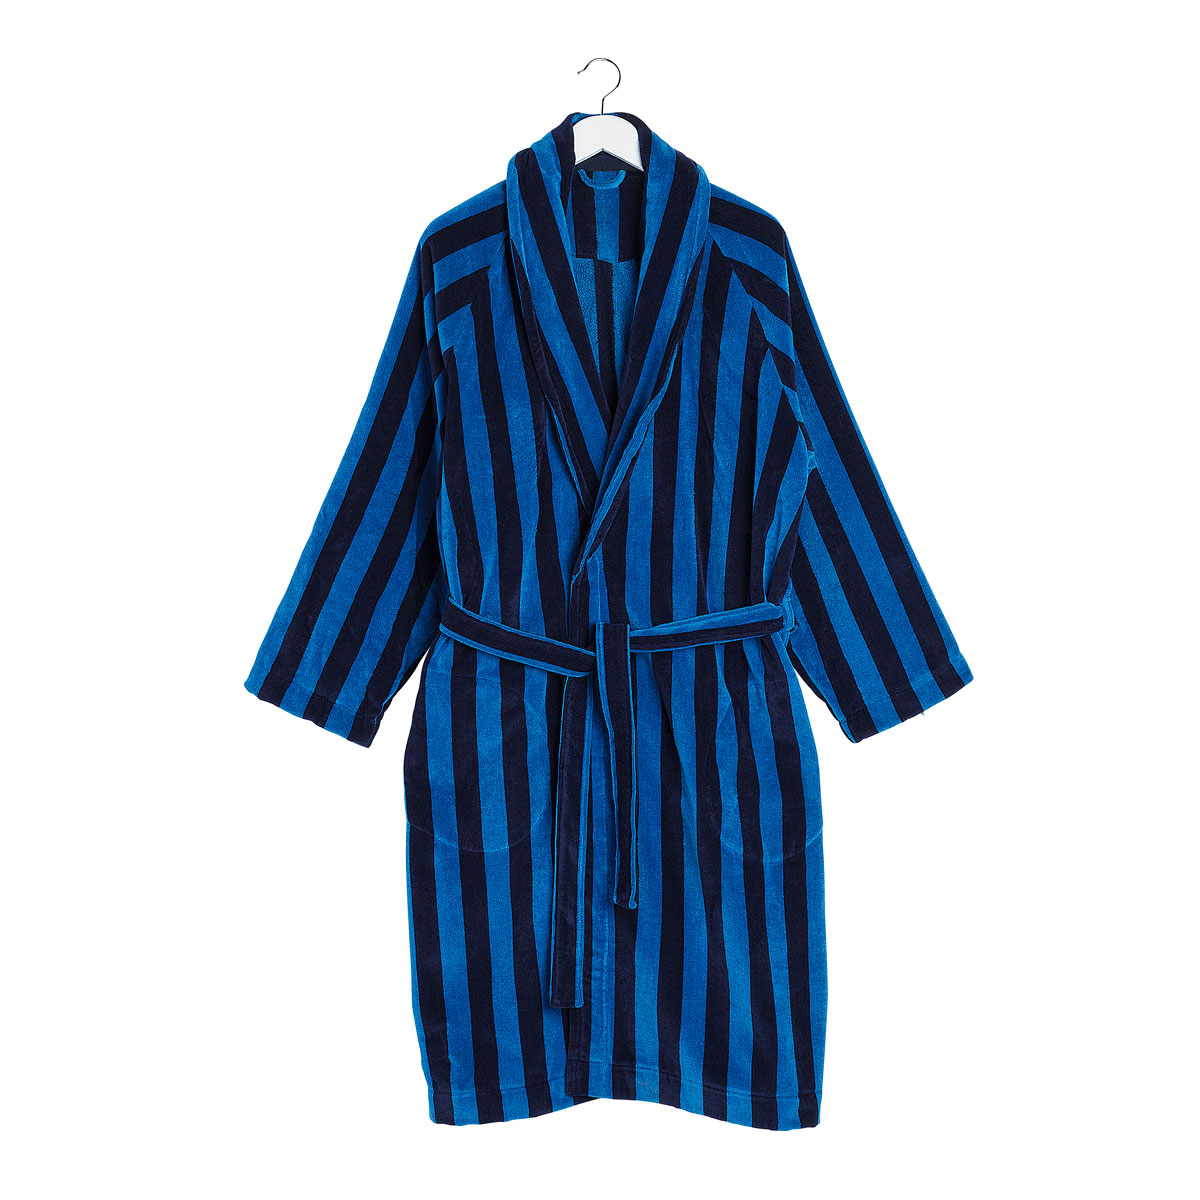 Blue Bedding Gray Bedding Red Bedding Featured Shops. New Bedding The Velvet Shop Bath Robes & Slippers. After drying off with a plush, soft bath towel, your bath robe and slippers are a source of comfort for you either as you prepare for a long working day ahead or as you wind down for the night after a hot shower. Bath robes and slippers.